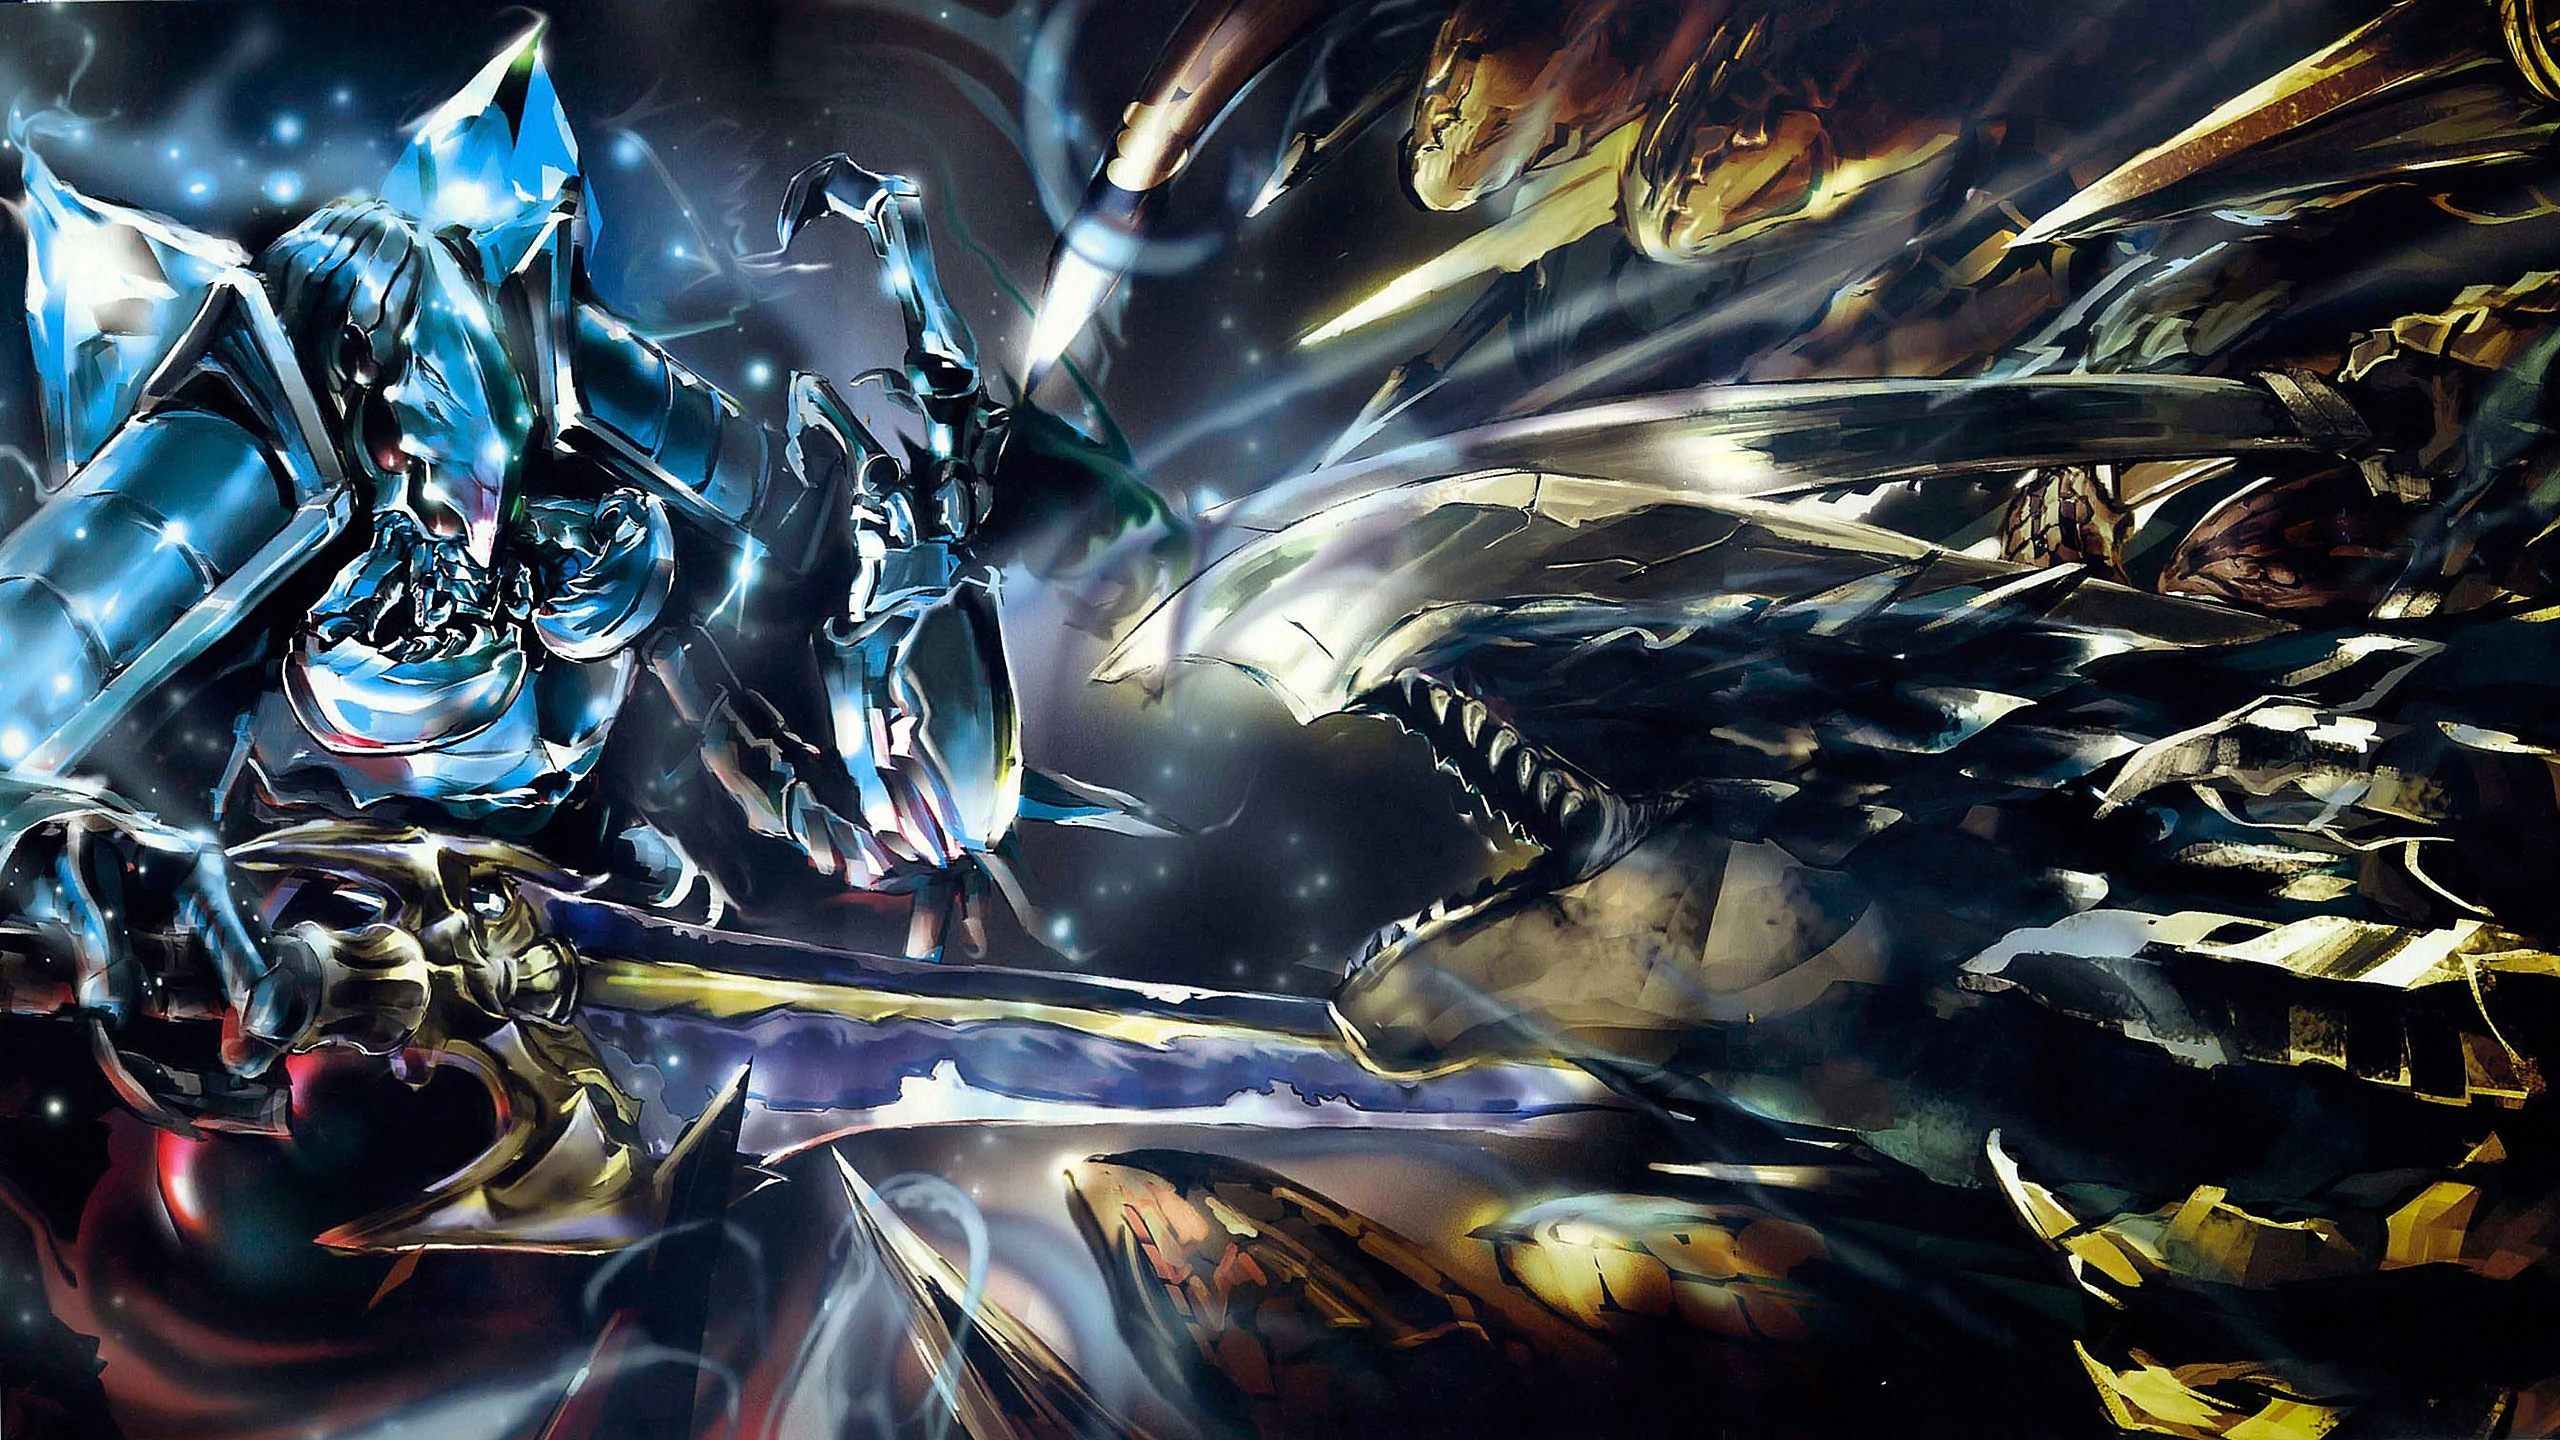 273 Overlord Hd Wallpapers Background Images Wallpaper Abyss Page 2